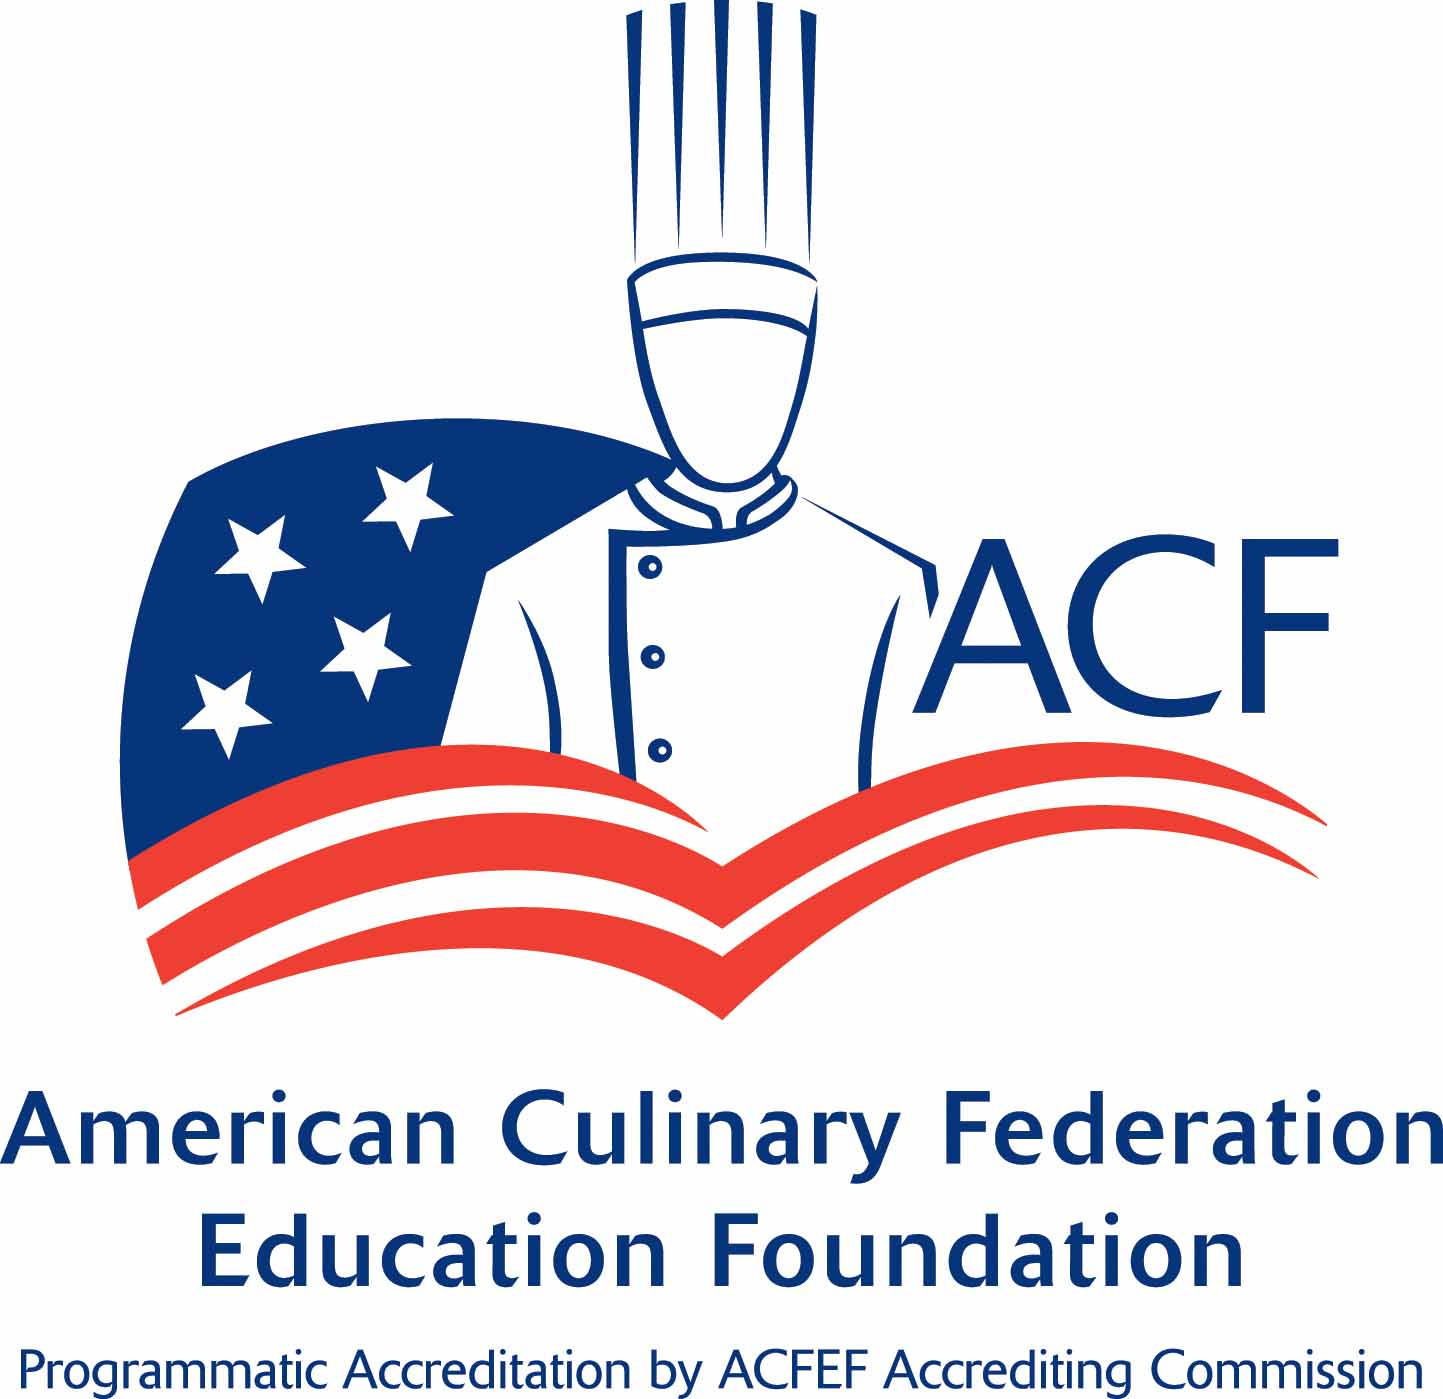 American Culinary Federation Education Foundation Logo